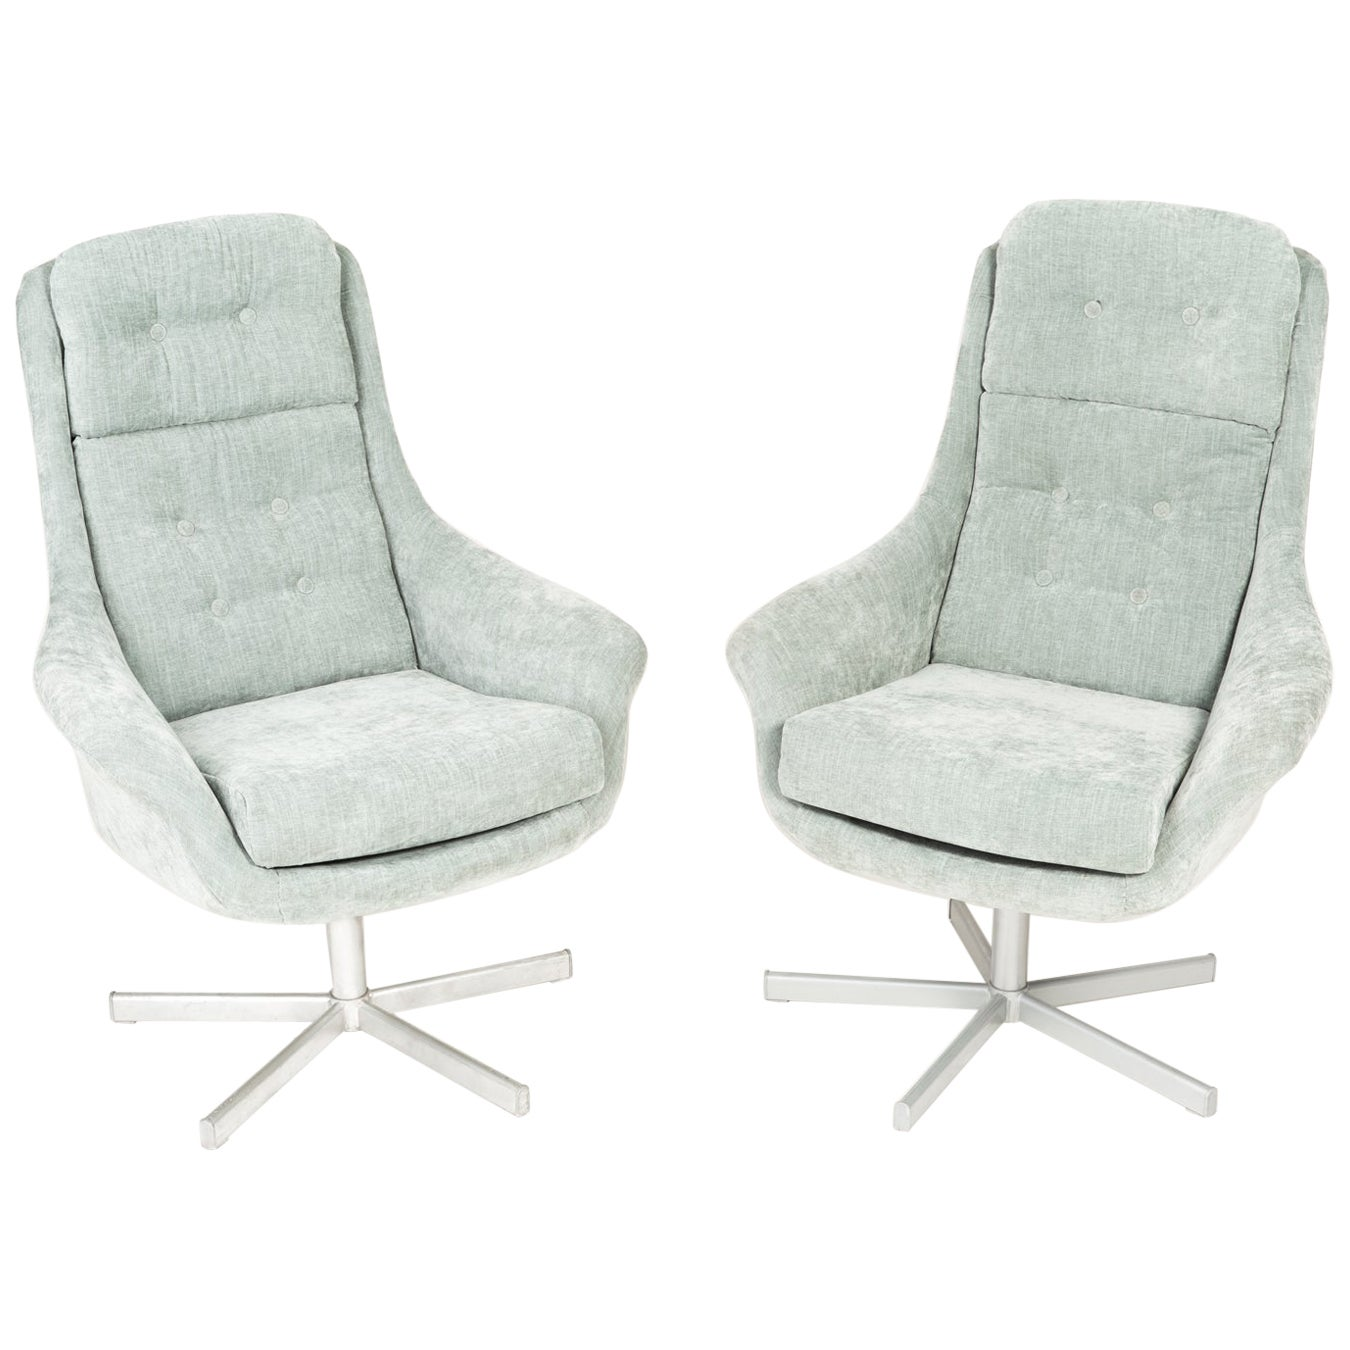 Set of Two 20th Century Vintage Light Green Swivel Armchairs, 1960s